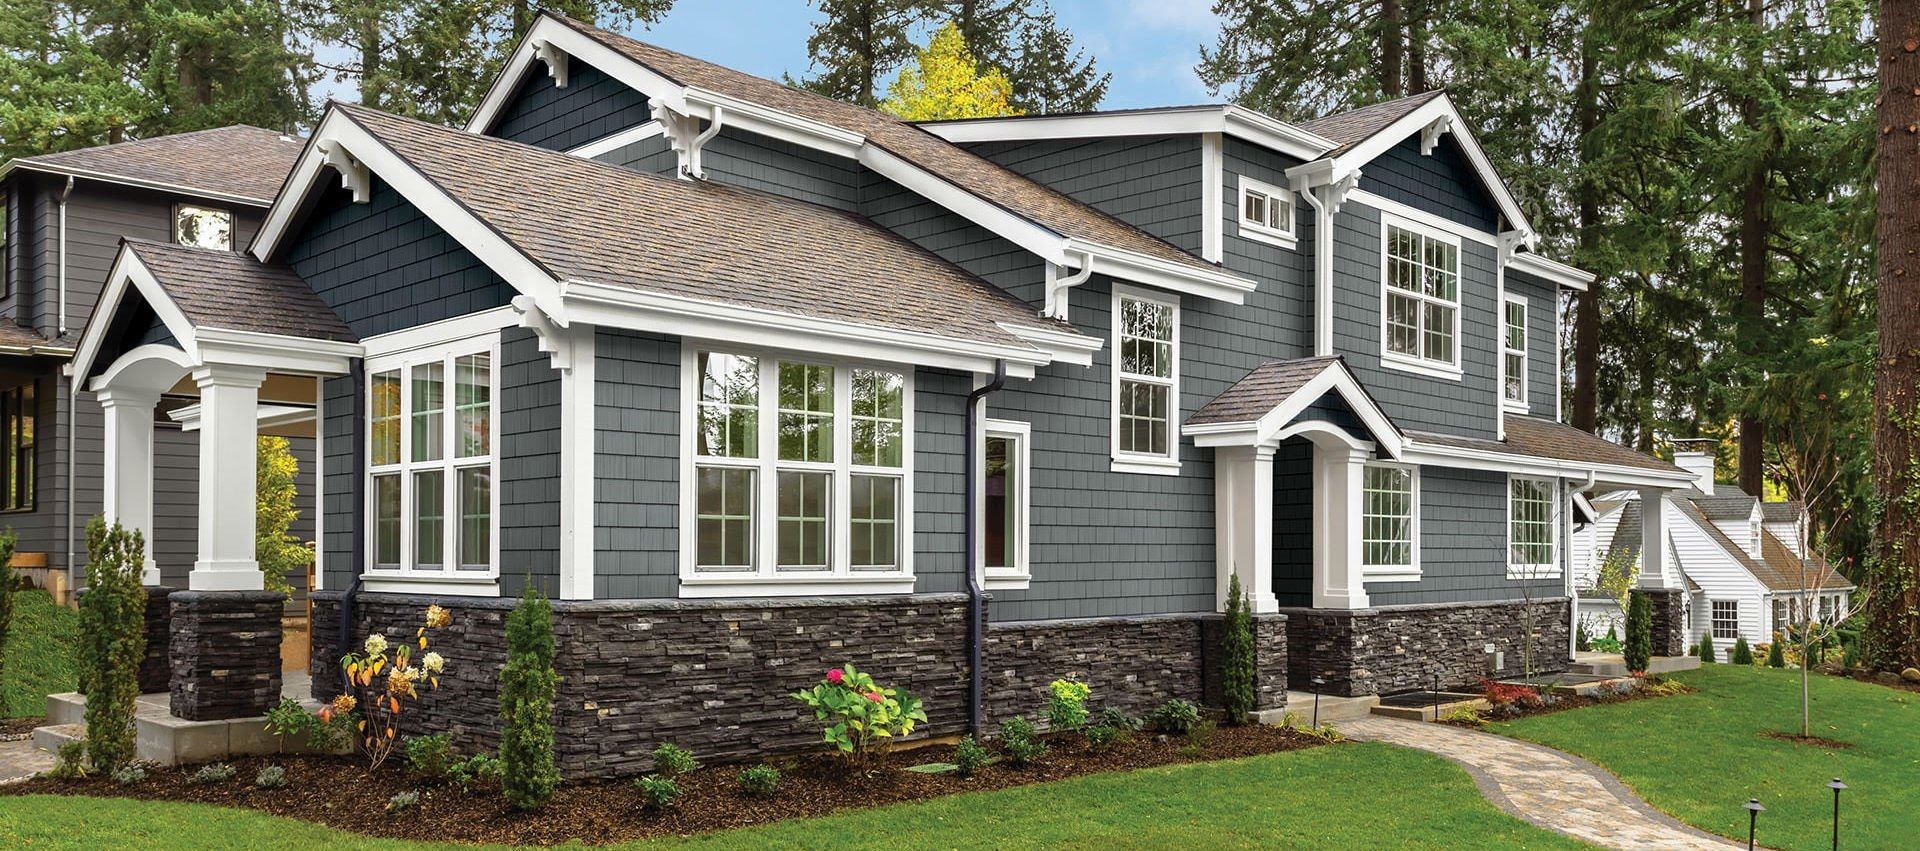 Vinyl Siding Installers in Buffalo NY